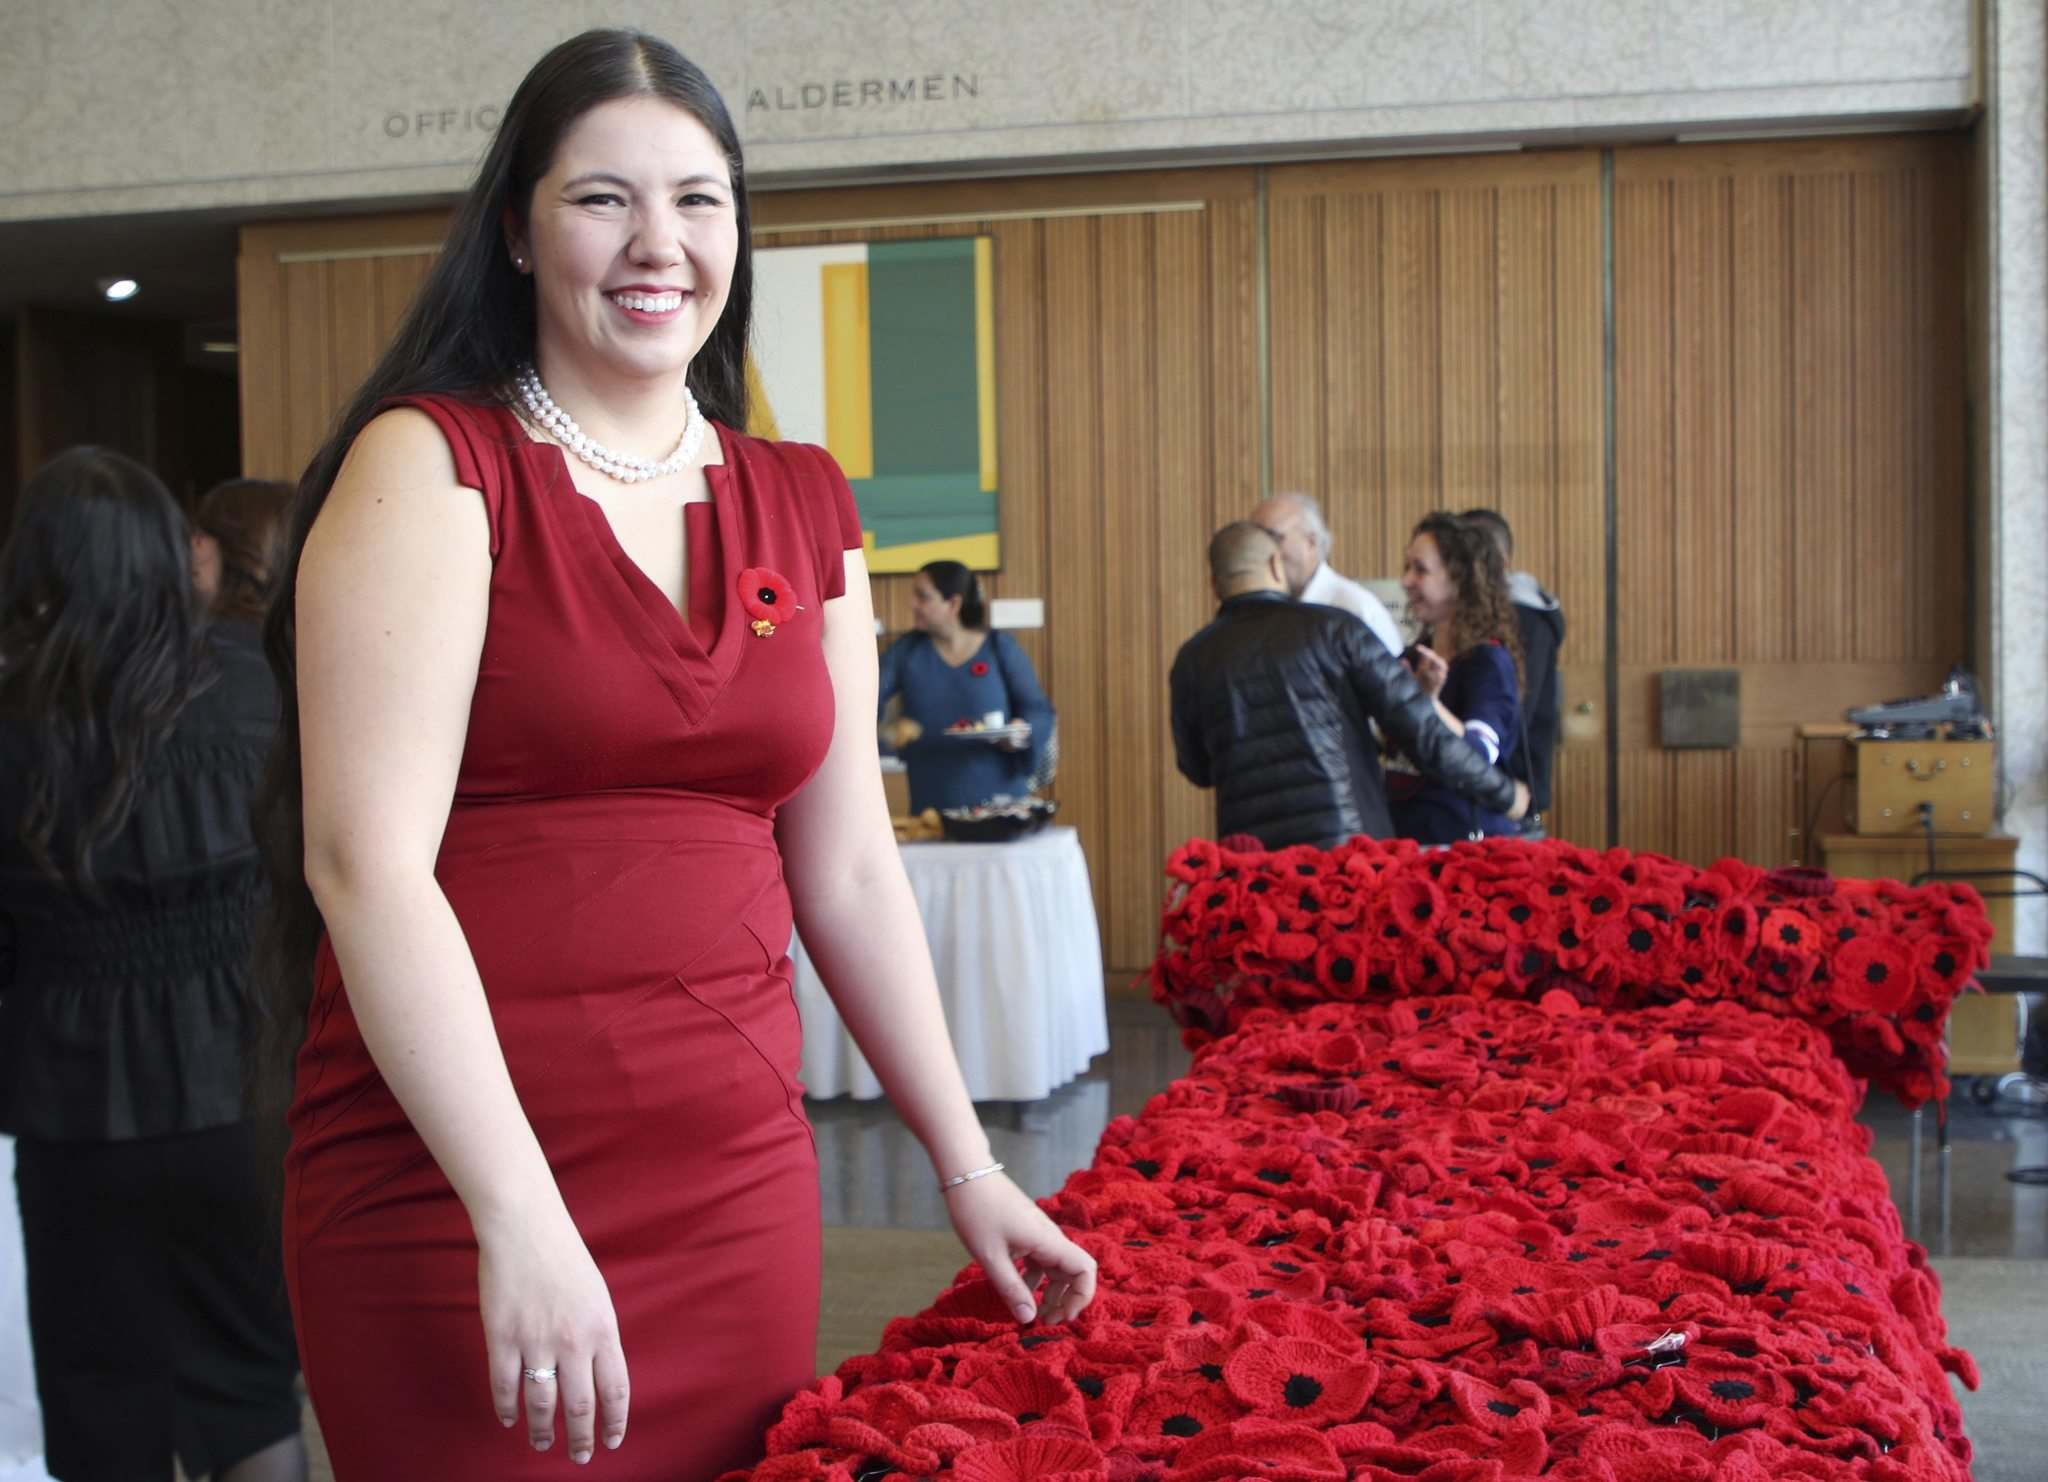 Sheilah Restall gathered her community to help stitch and sew handmade poppies to create a blanket of more than 8,000 handmade poppies ahead of Remembrance Day.